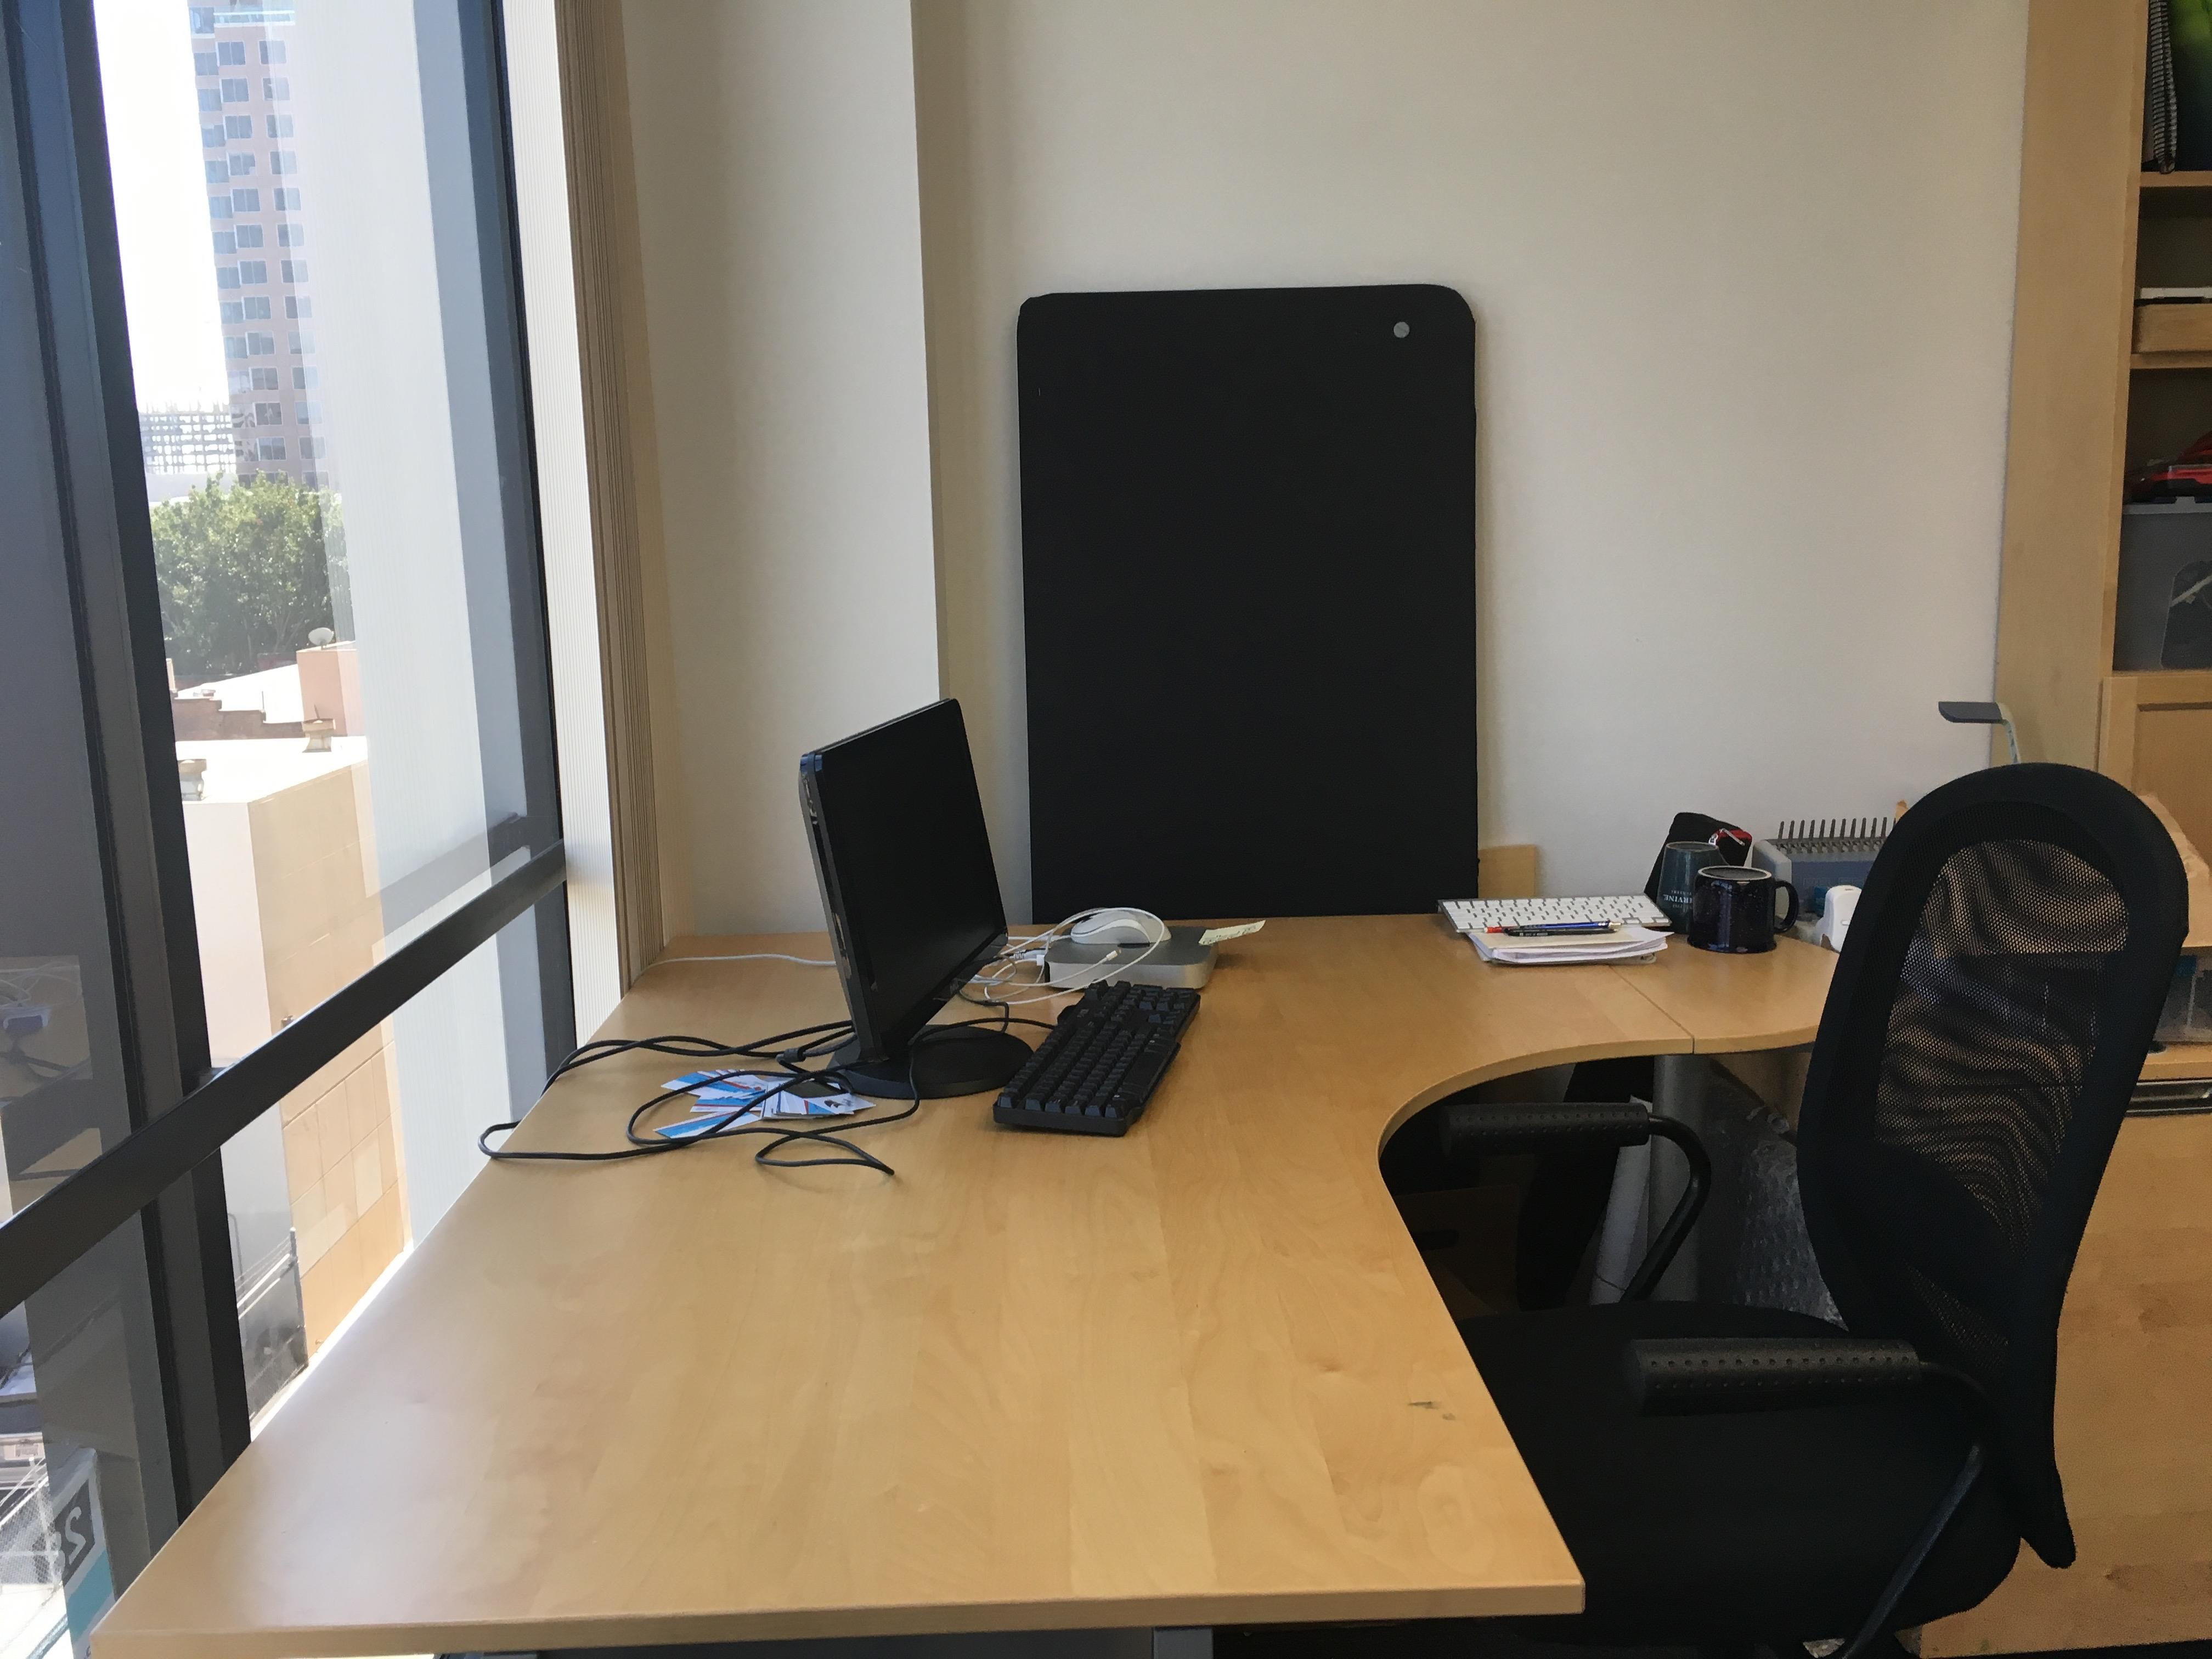 OpenTech Media, Inc. - Small office for 2-3